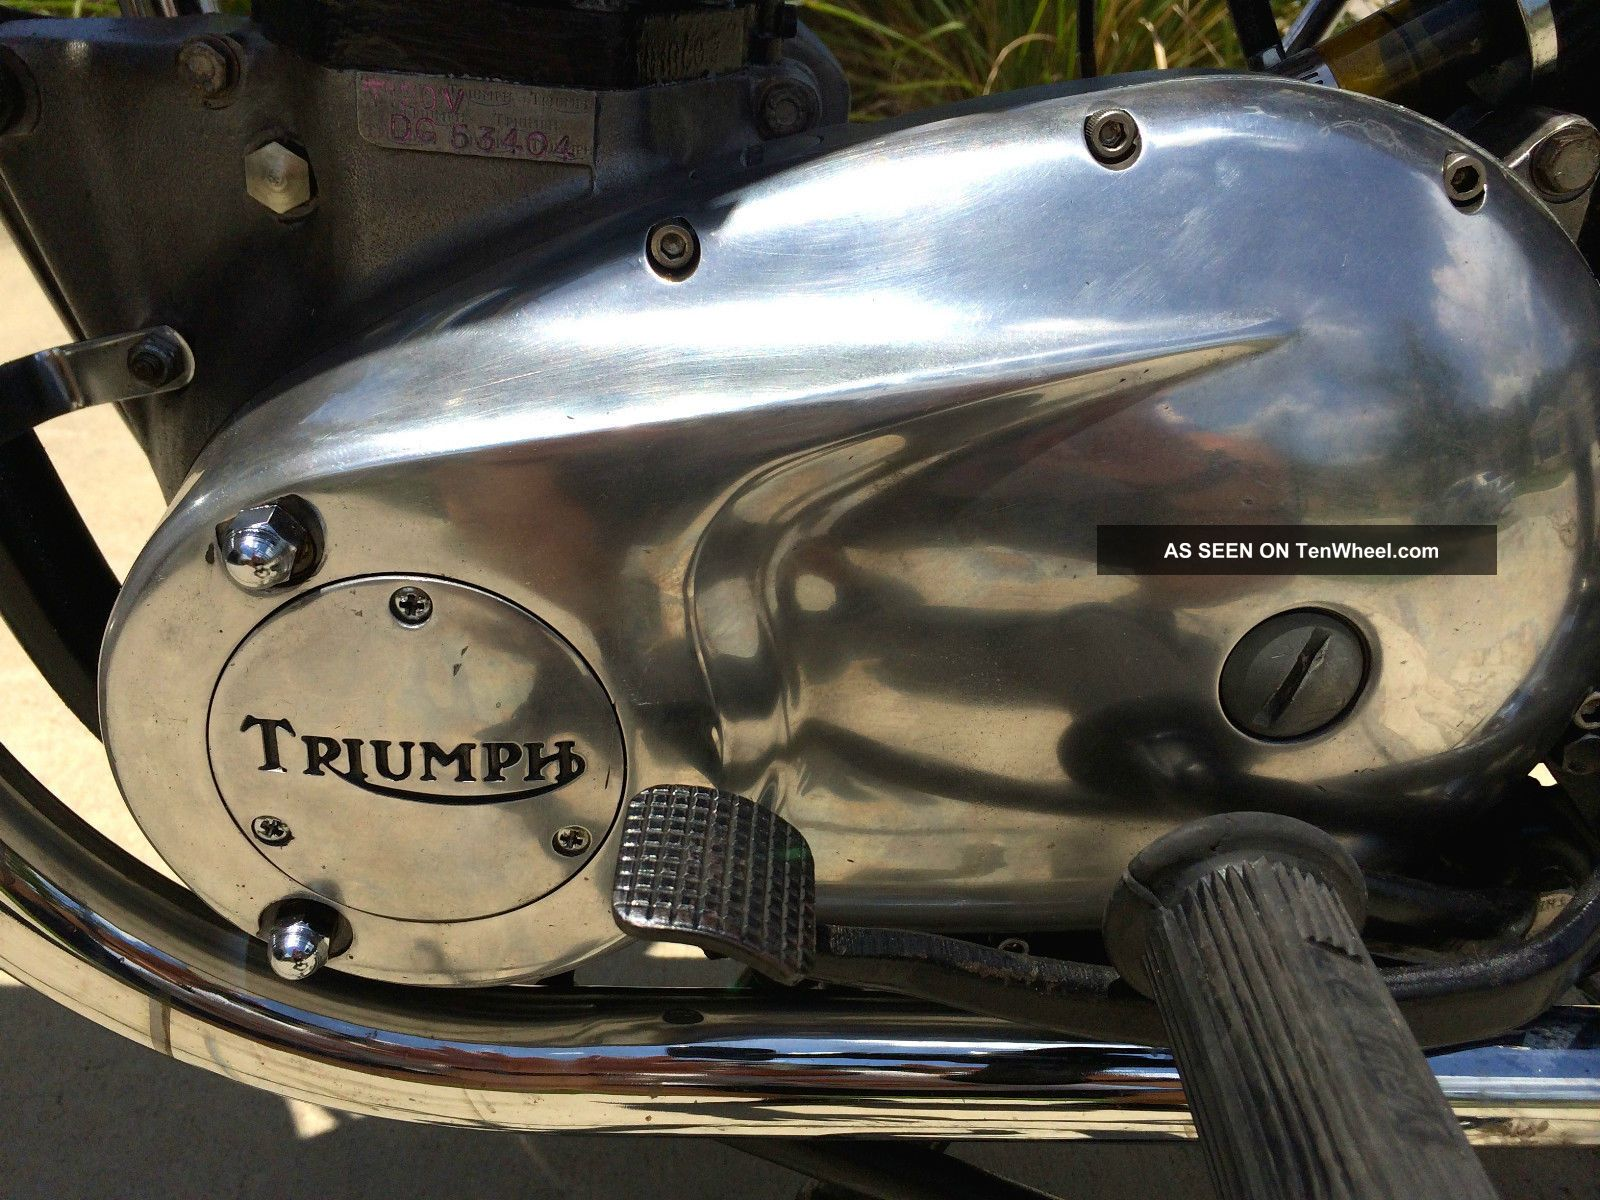 1972 triumph motorcycle modelson - photo #43